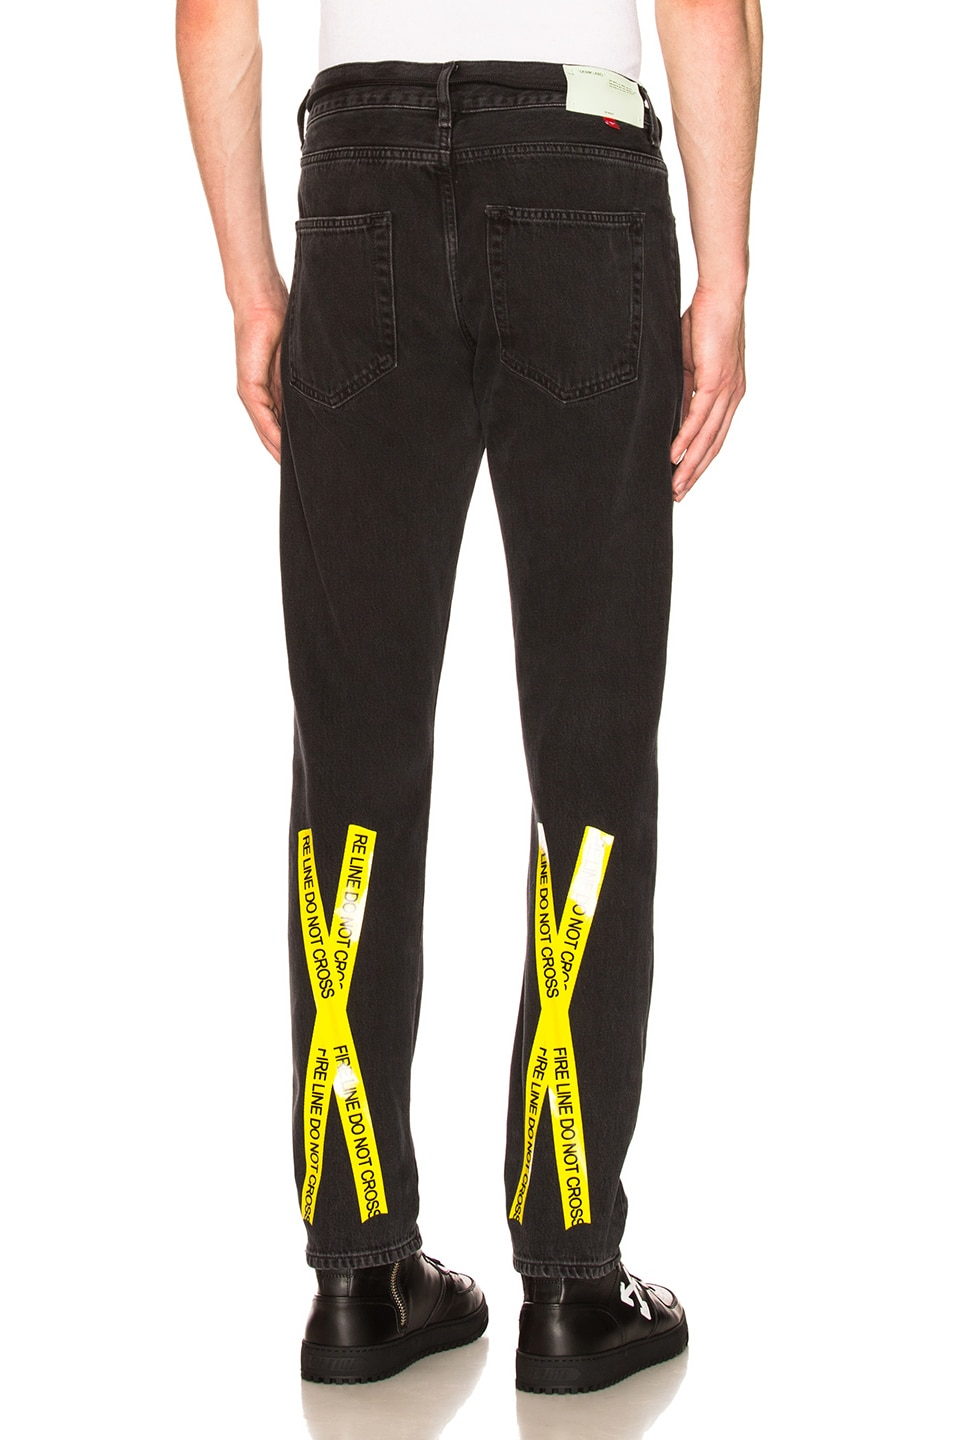 c813ca115a21 Image 1 of OFF-WHITE Firetape Slim Jeans in Black   Yellow